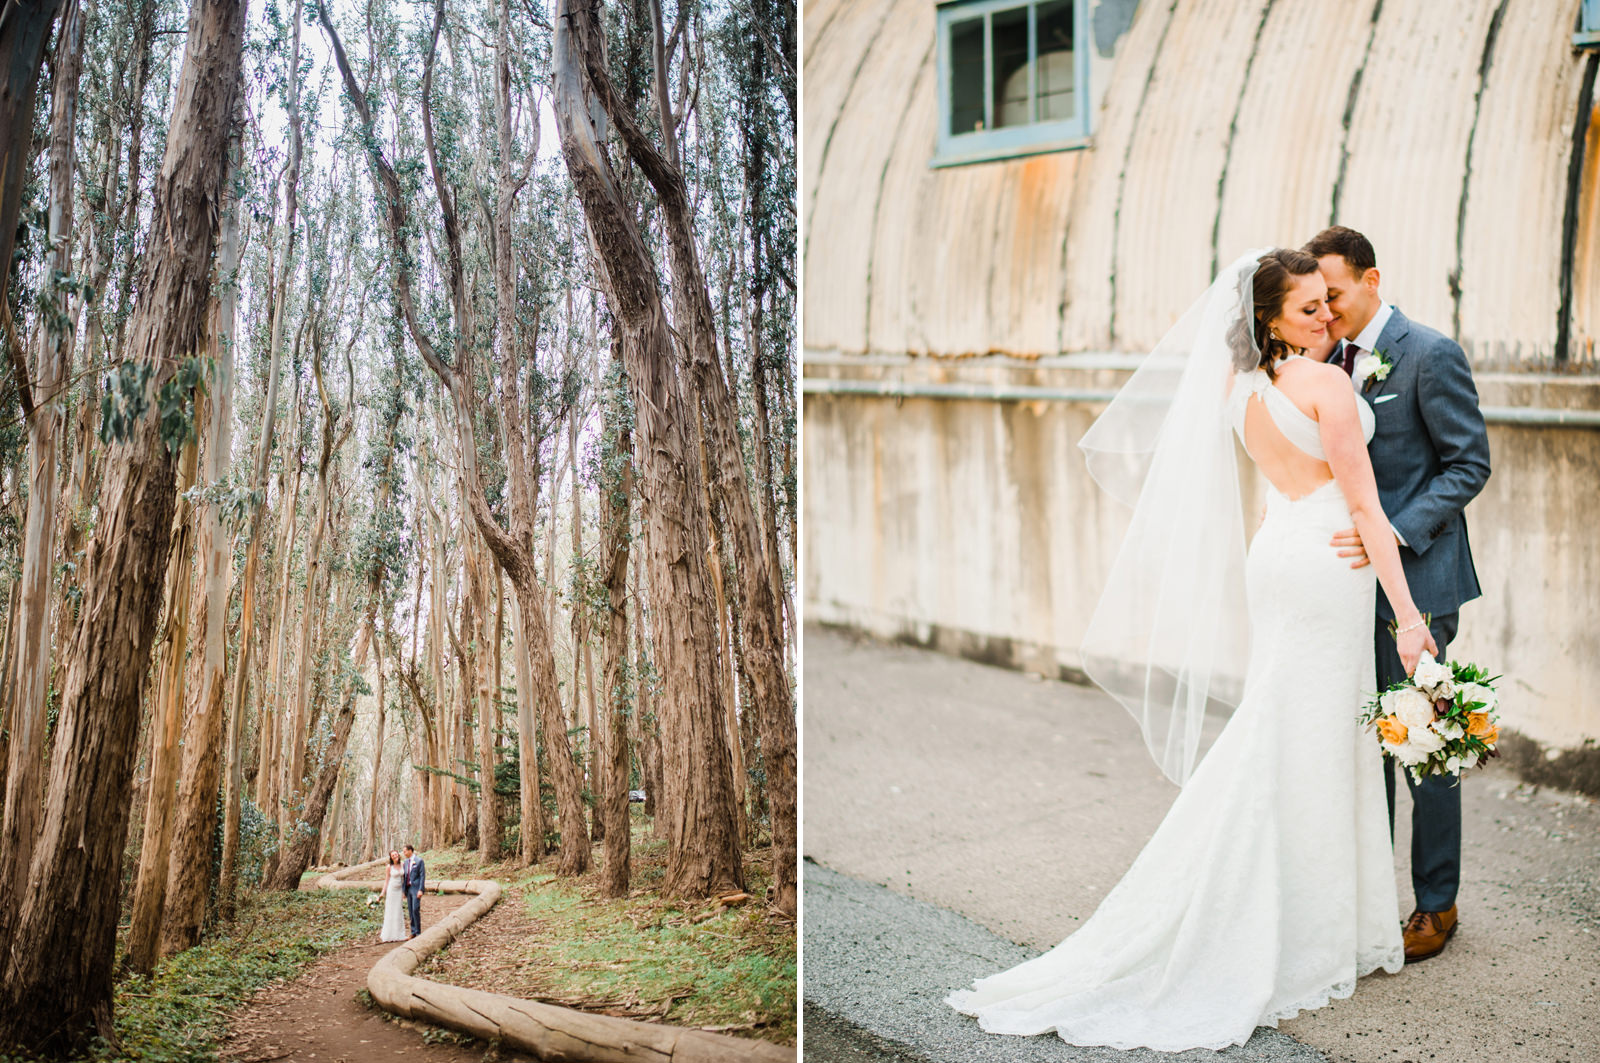 195-fine-art-san-francisco-wedding-photos-at-the-presidio-and-the-winery.jpg